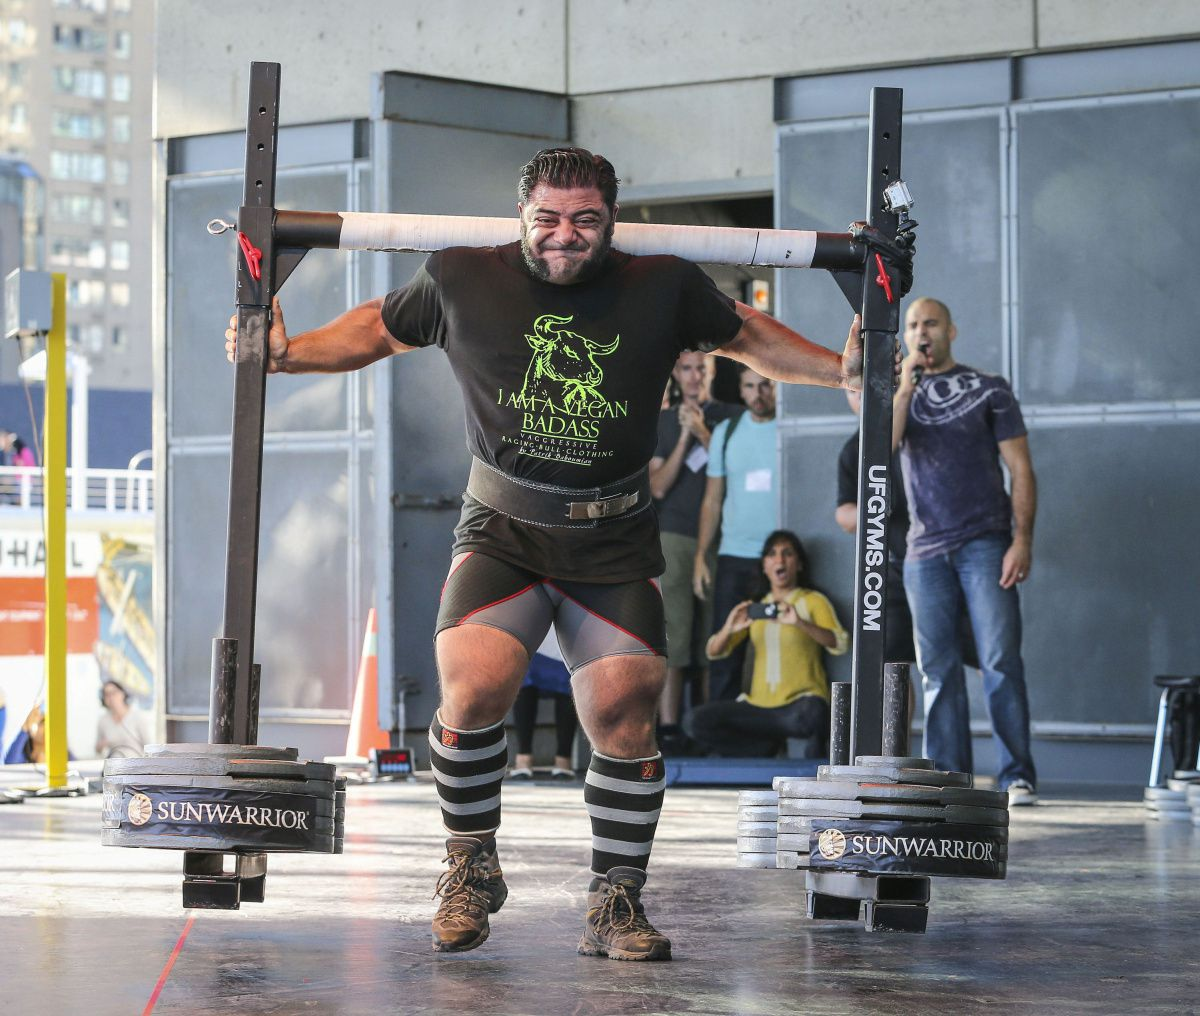 Patrik Baboumian, former body builder. Once Germany's strongest man, European powerlifting champion, and holds world strength records in yoke walking, beer keg lifting, and front hold.